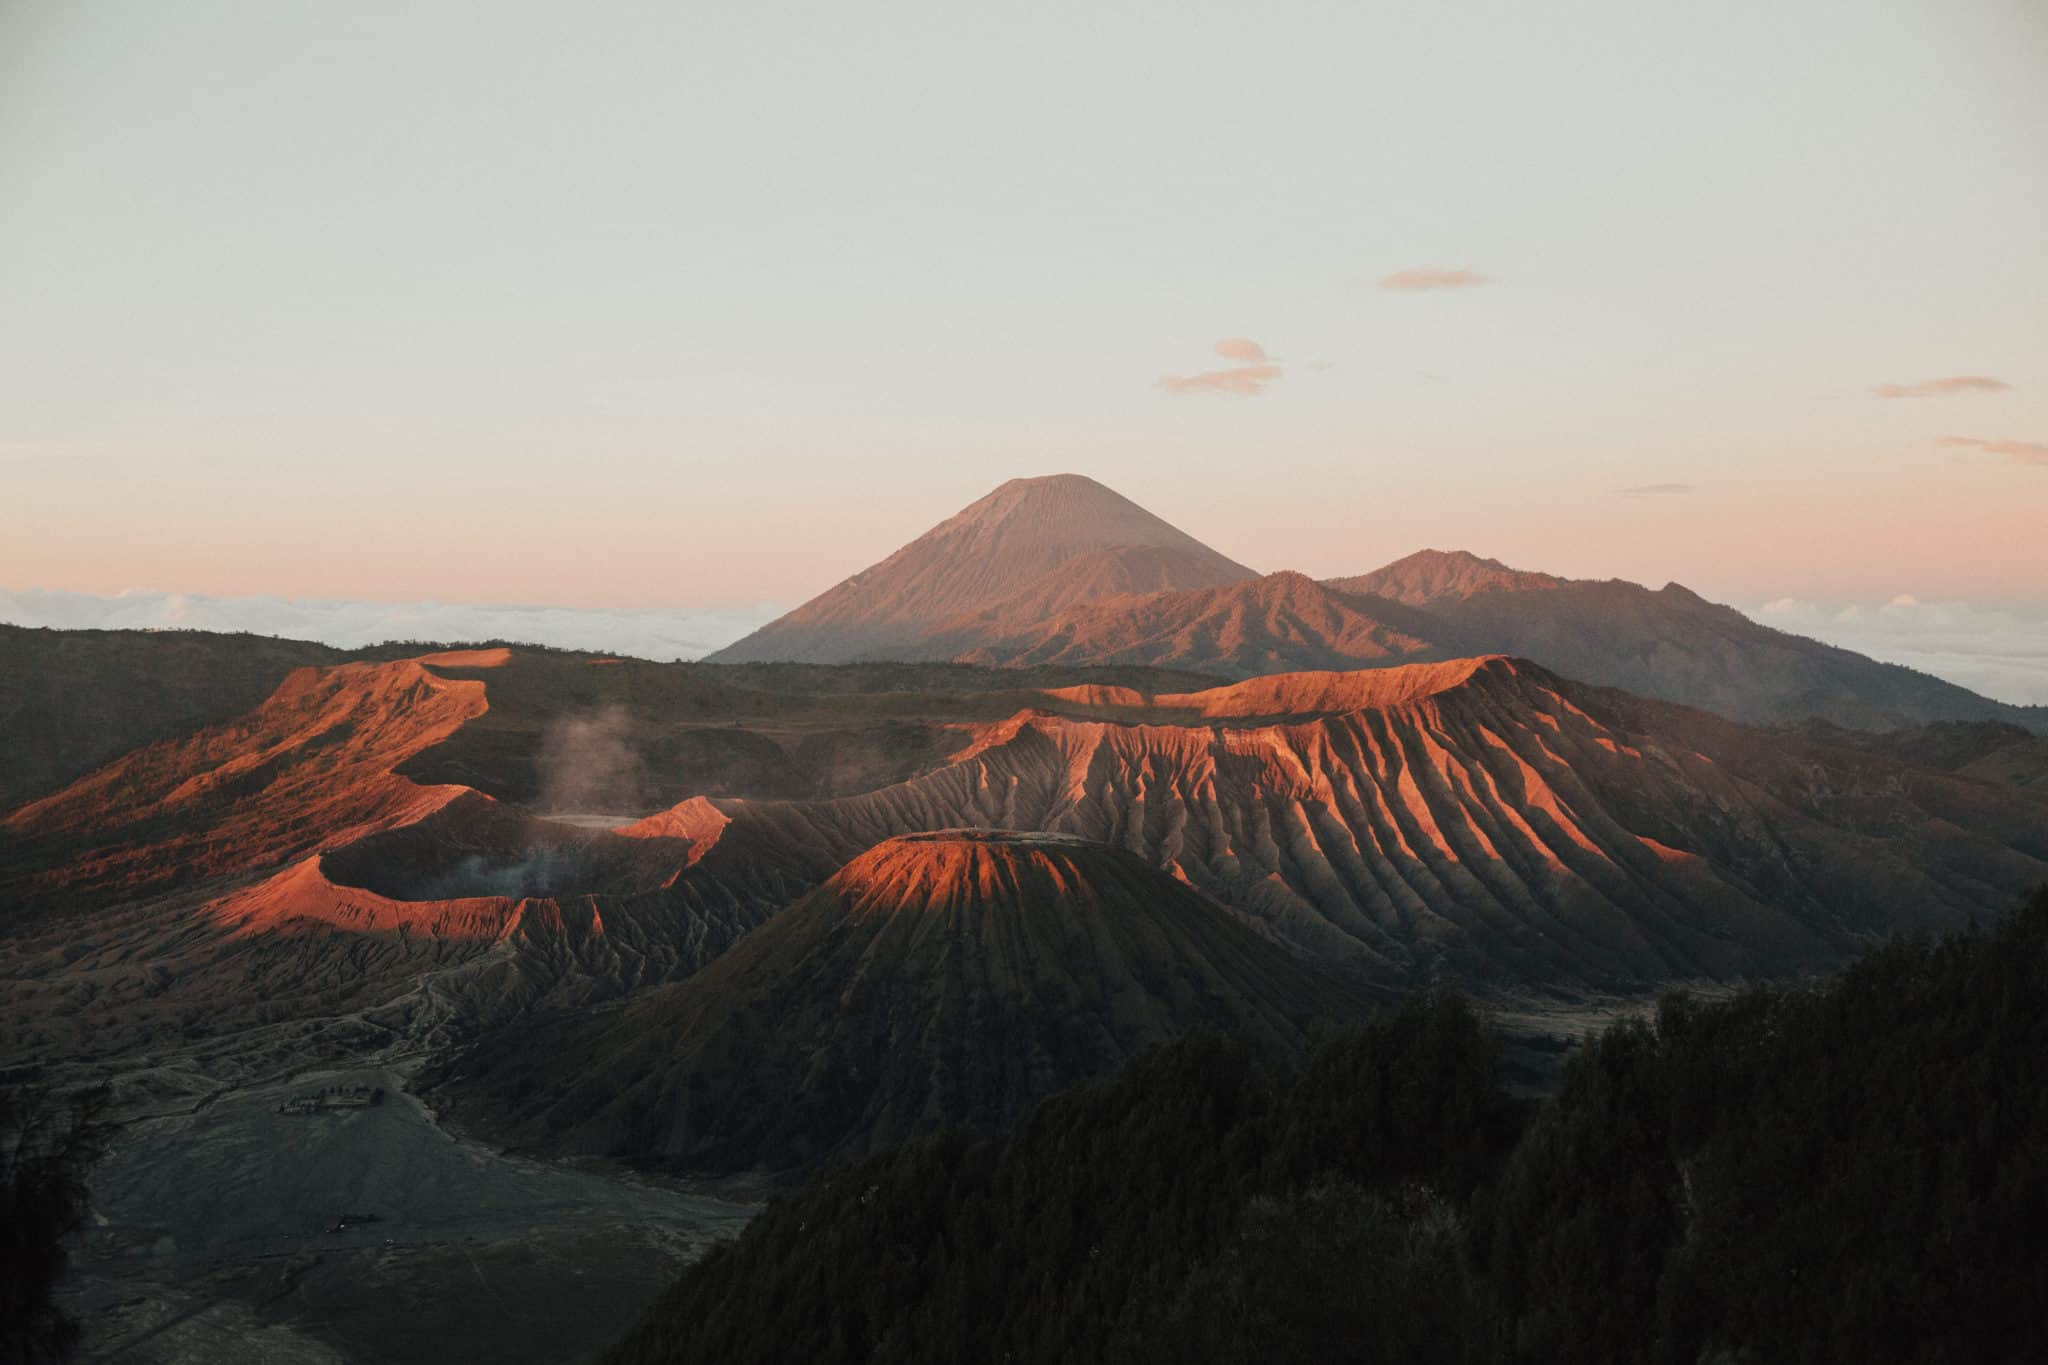 Mount Bromo view from sunrise